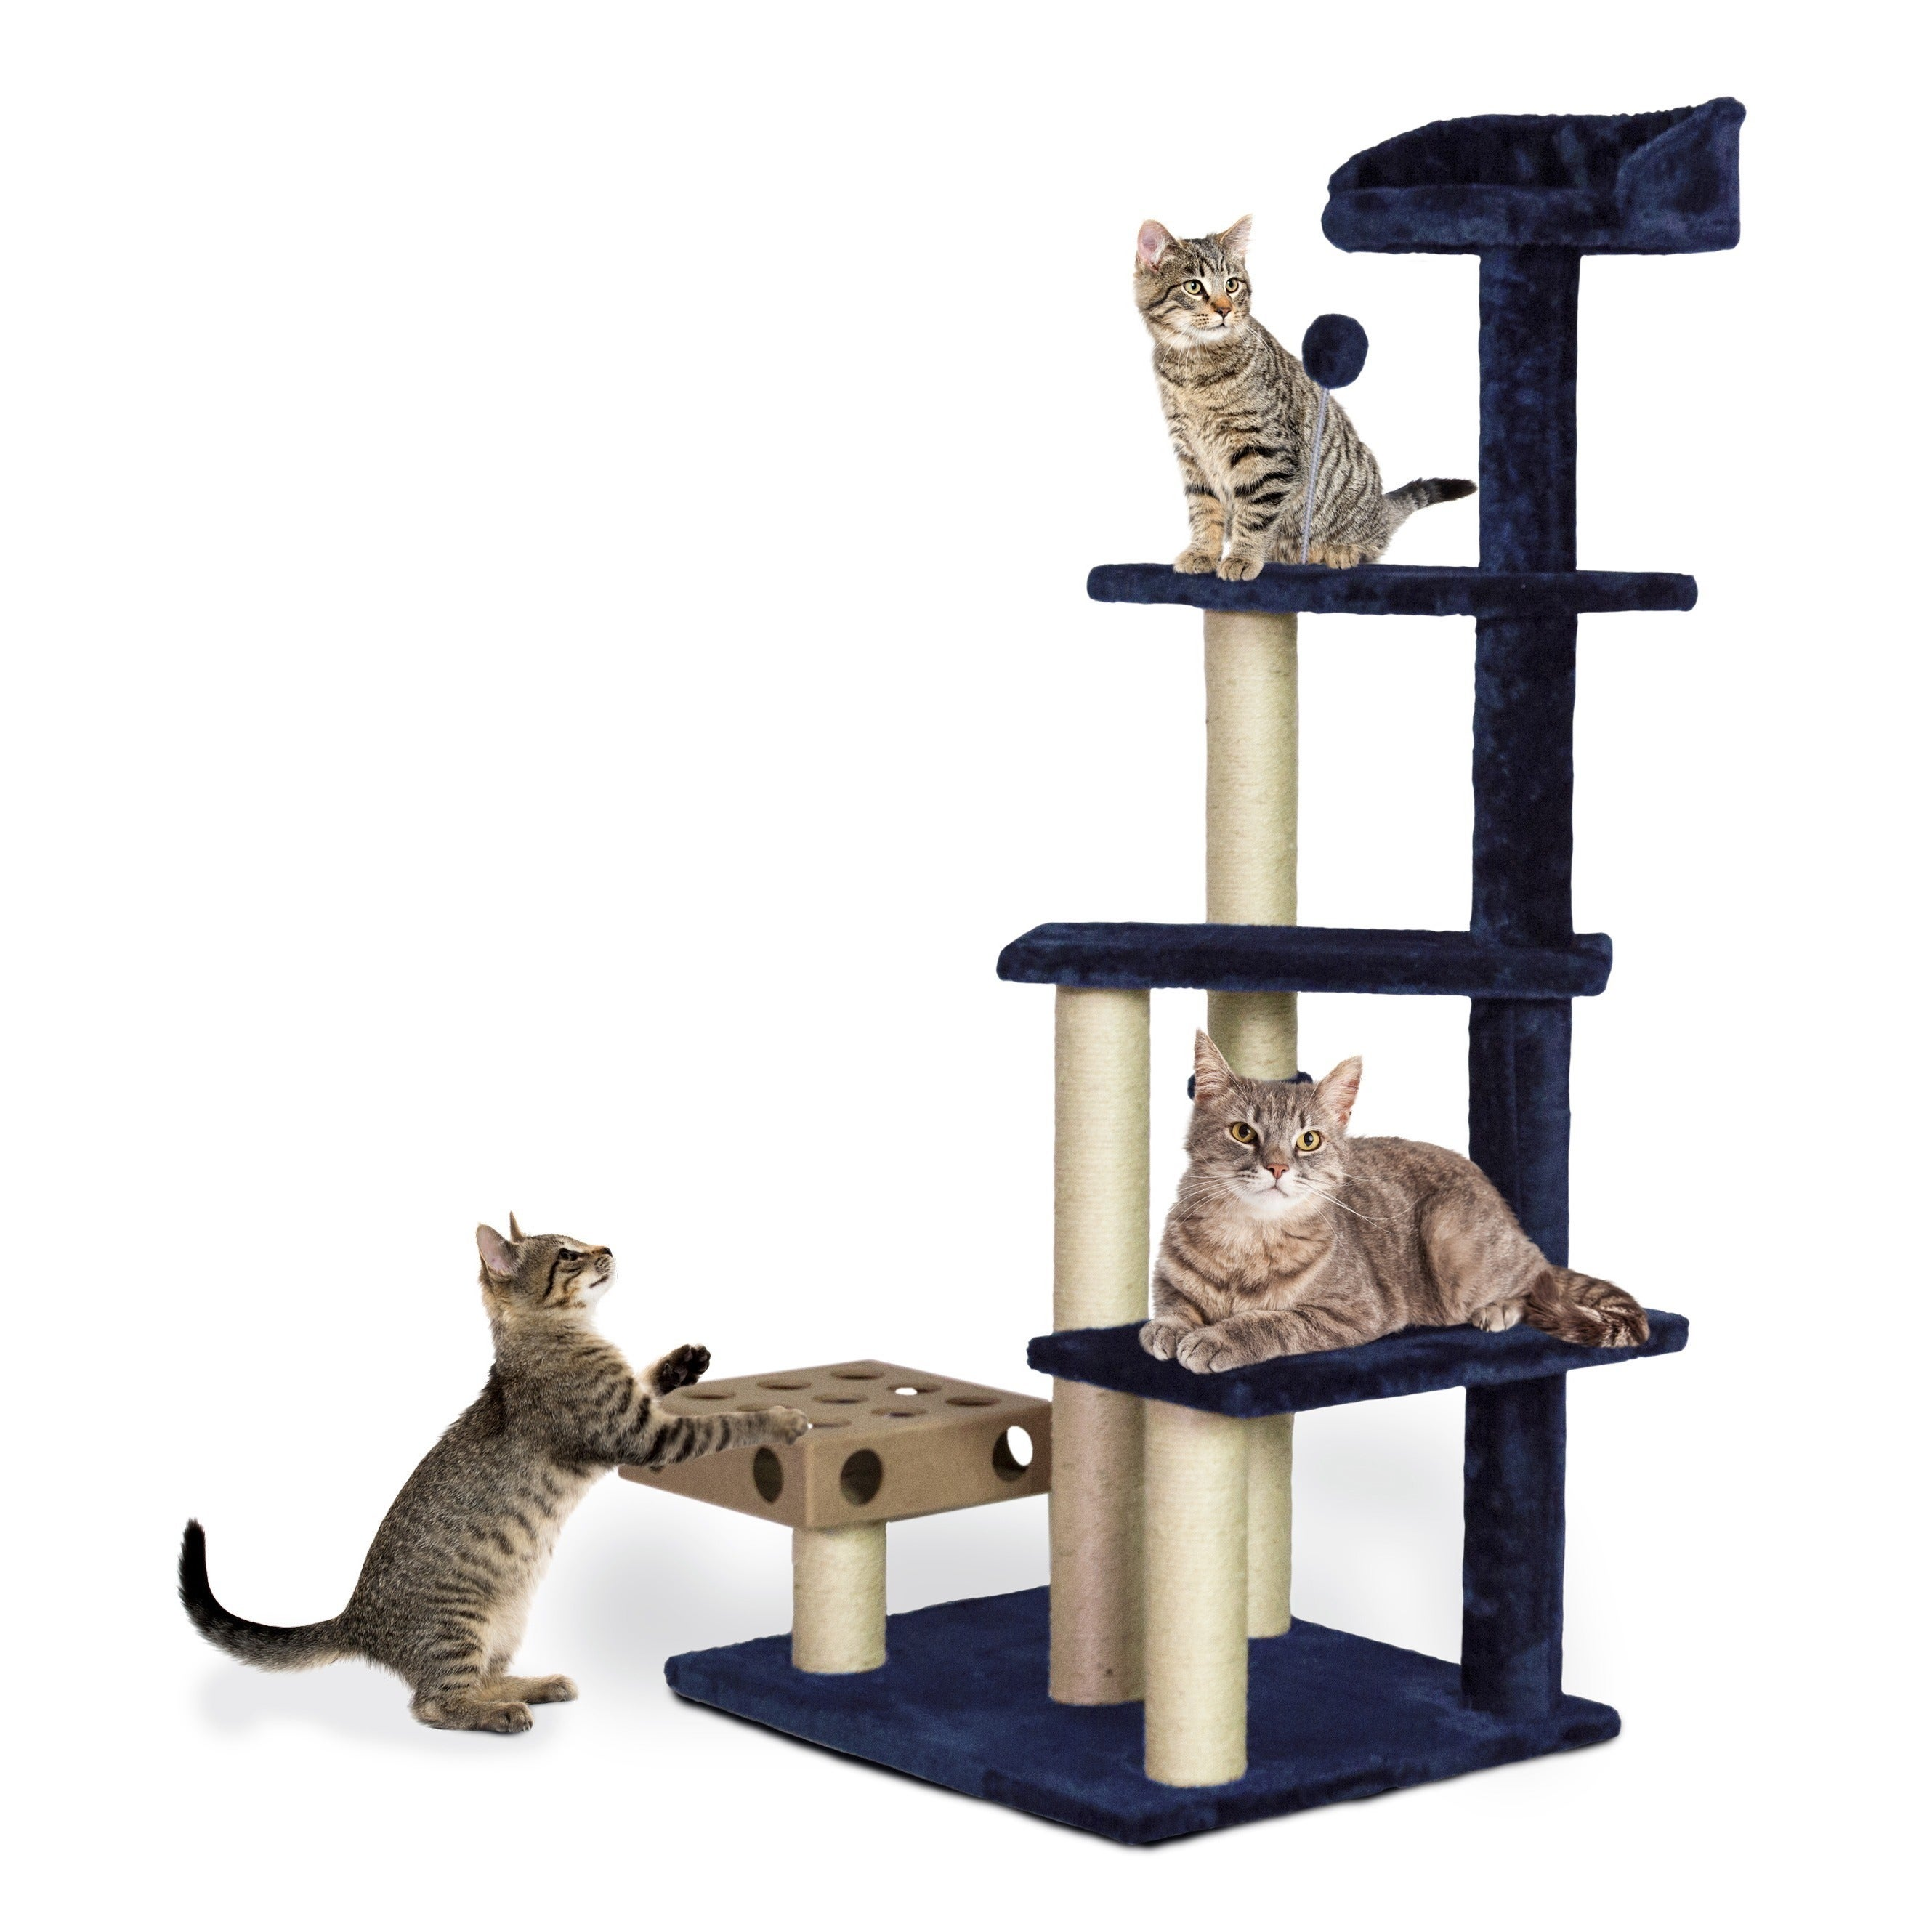 inch club go overstock furniture tree product cat free shipping pet today supplies